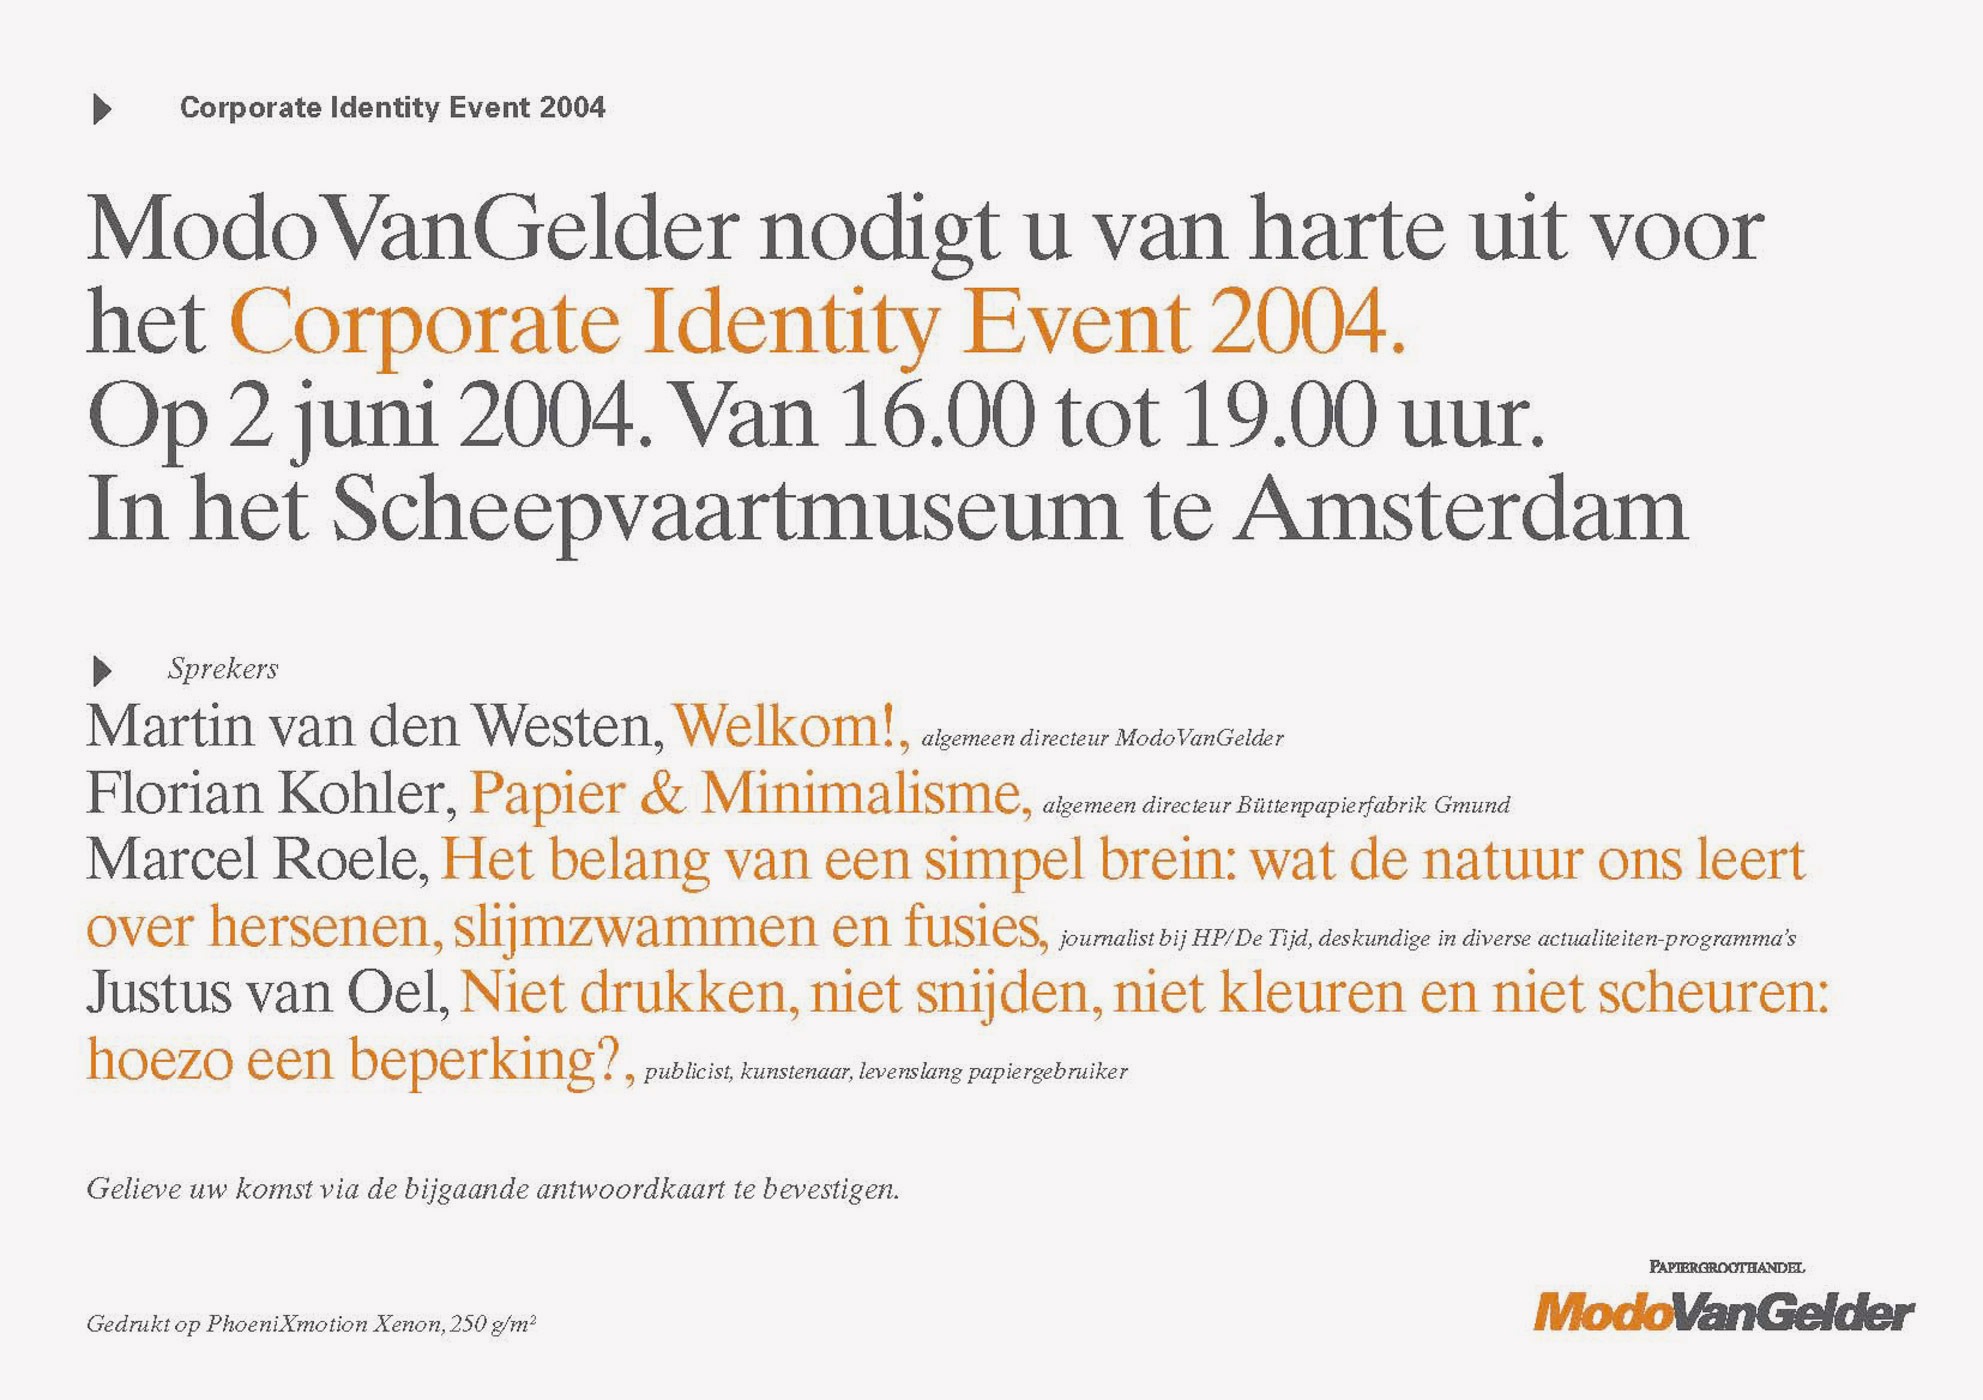 ModoVanGelder, De kracht van Kleur, paper, invitation event, graphic design